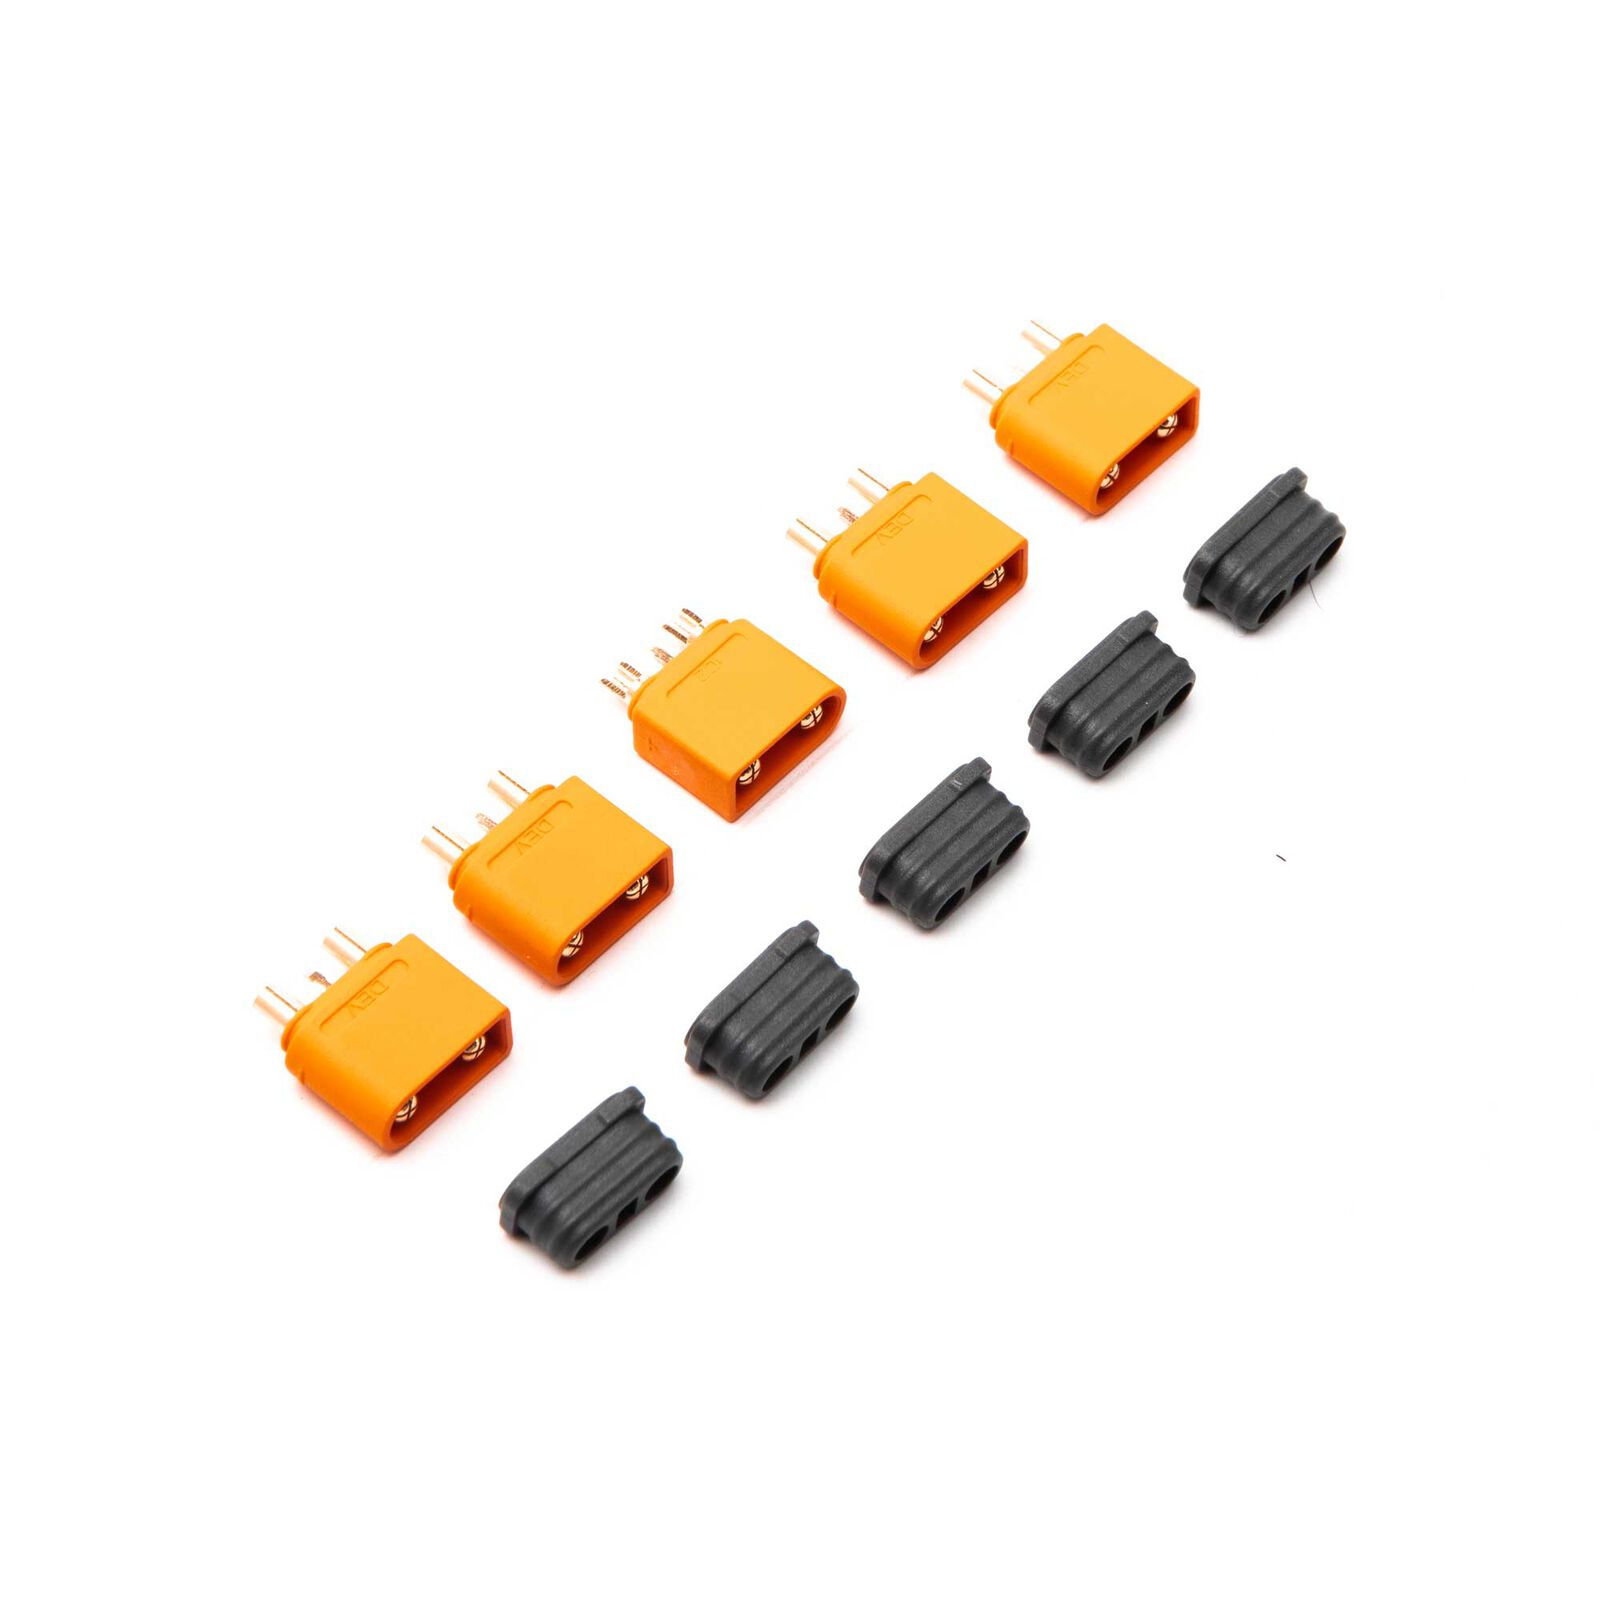 Connector: IC2 Device (Set of 5)